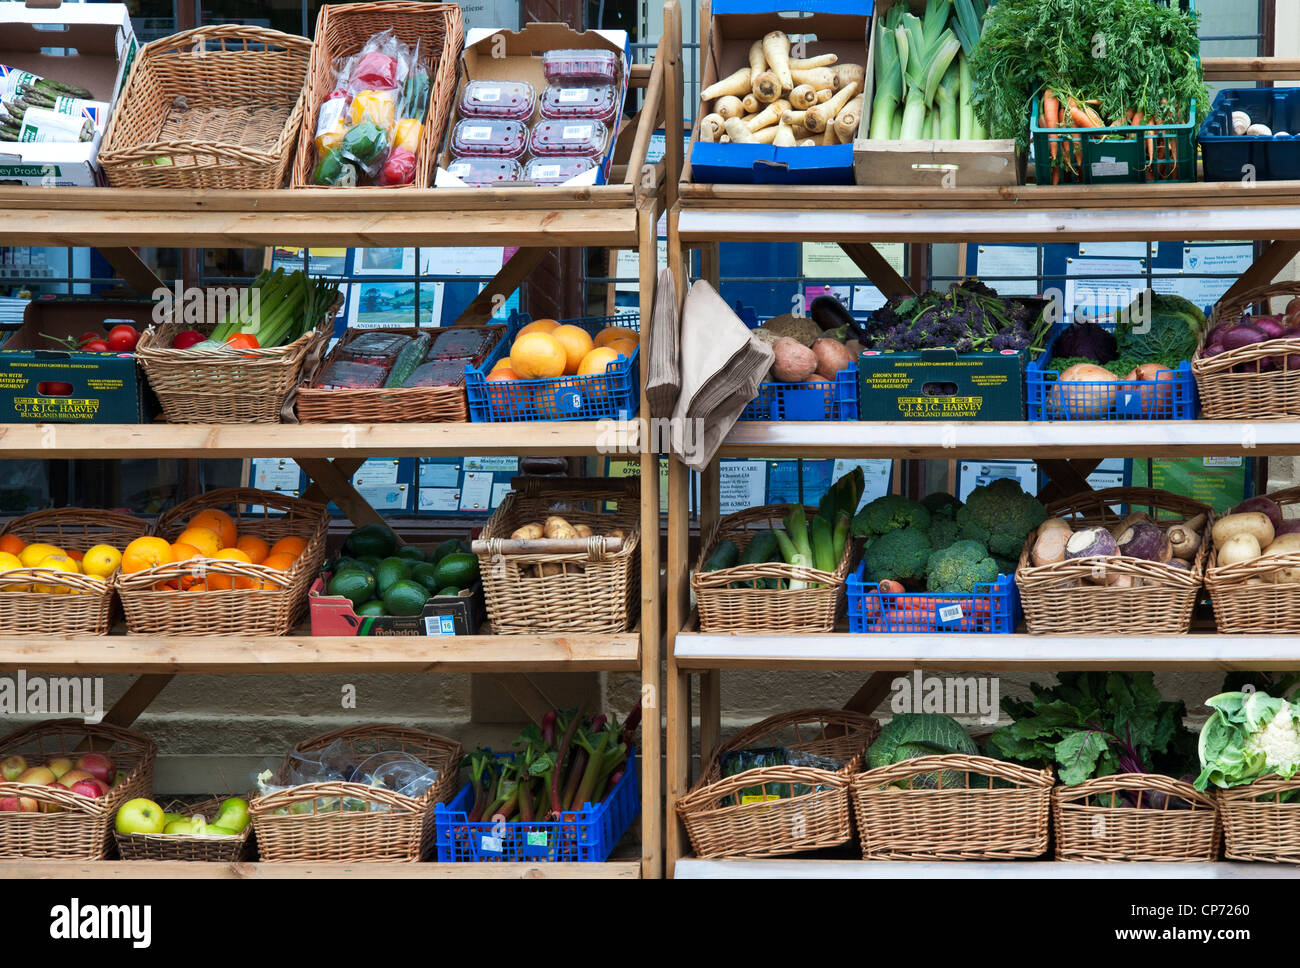 Fruit and vegetable stand outside a village shop in Long Compton, Warwickshire, England - Stock Image